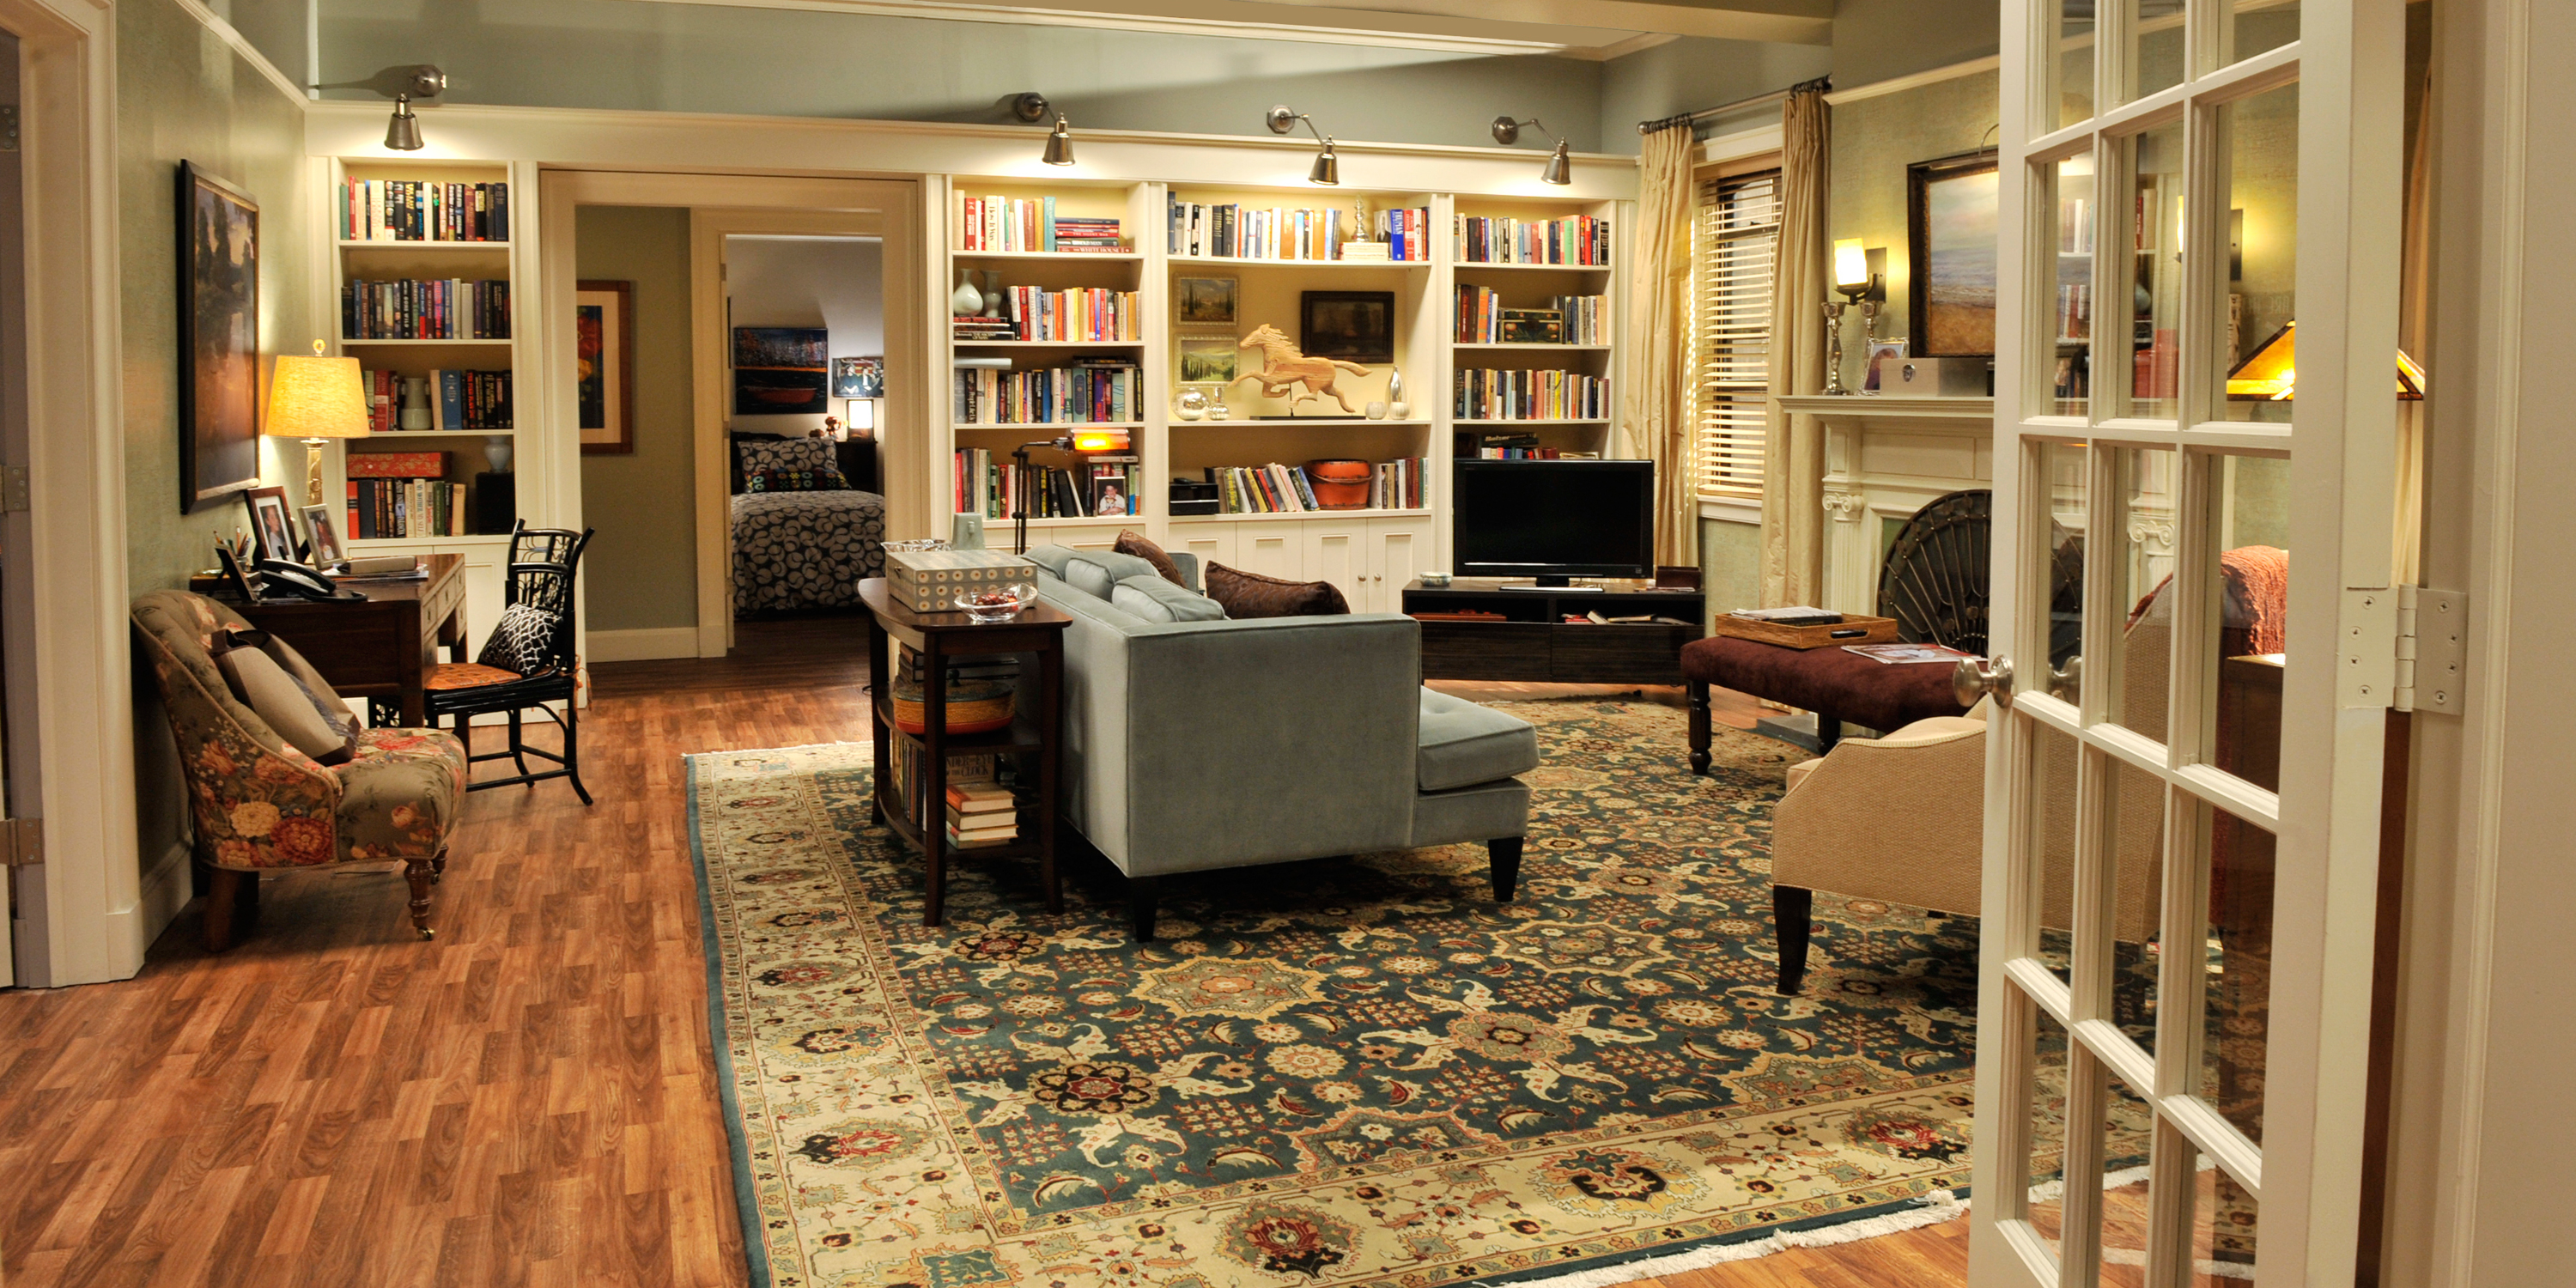 A Tv Set Decorator 39 S Step By Step Guide To Making Any Room Look Prime Time Ready 8 Smart